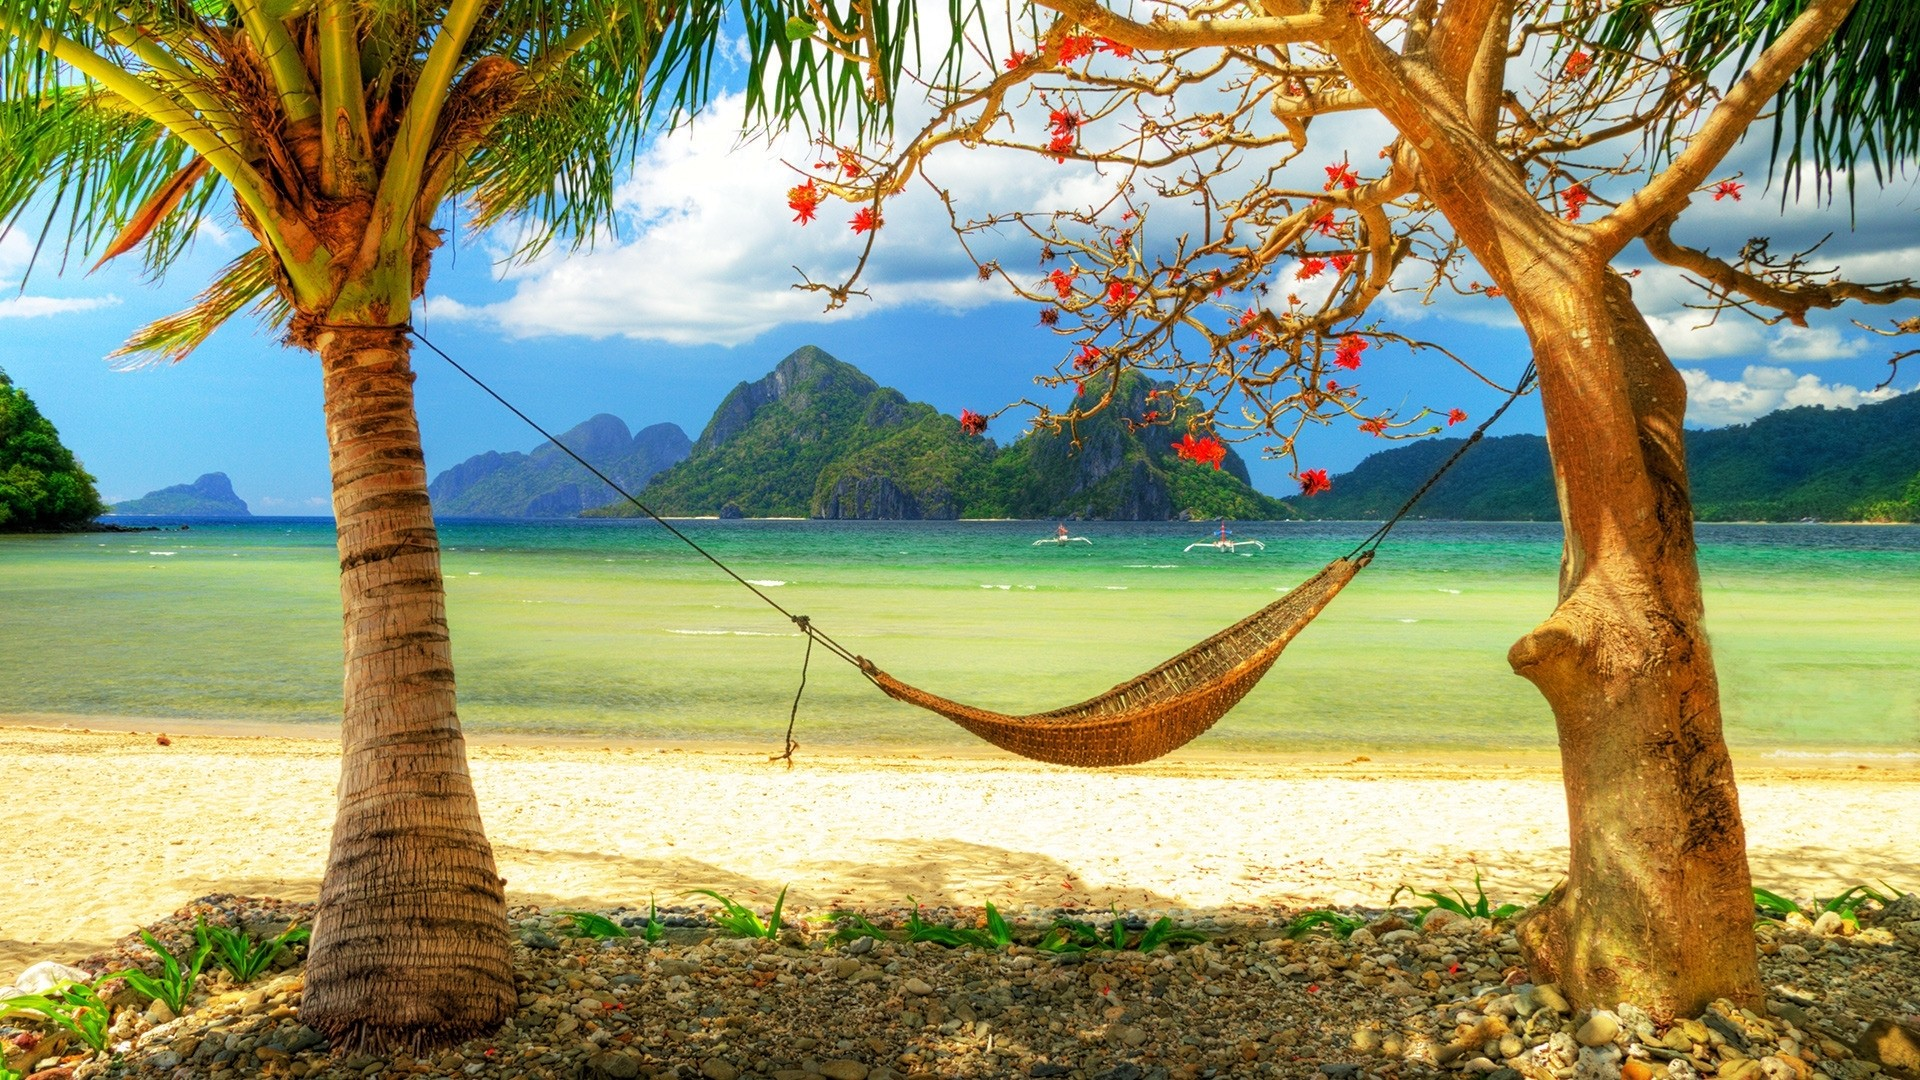 Relaxing wallpaper photo hd